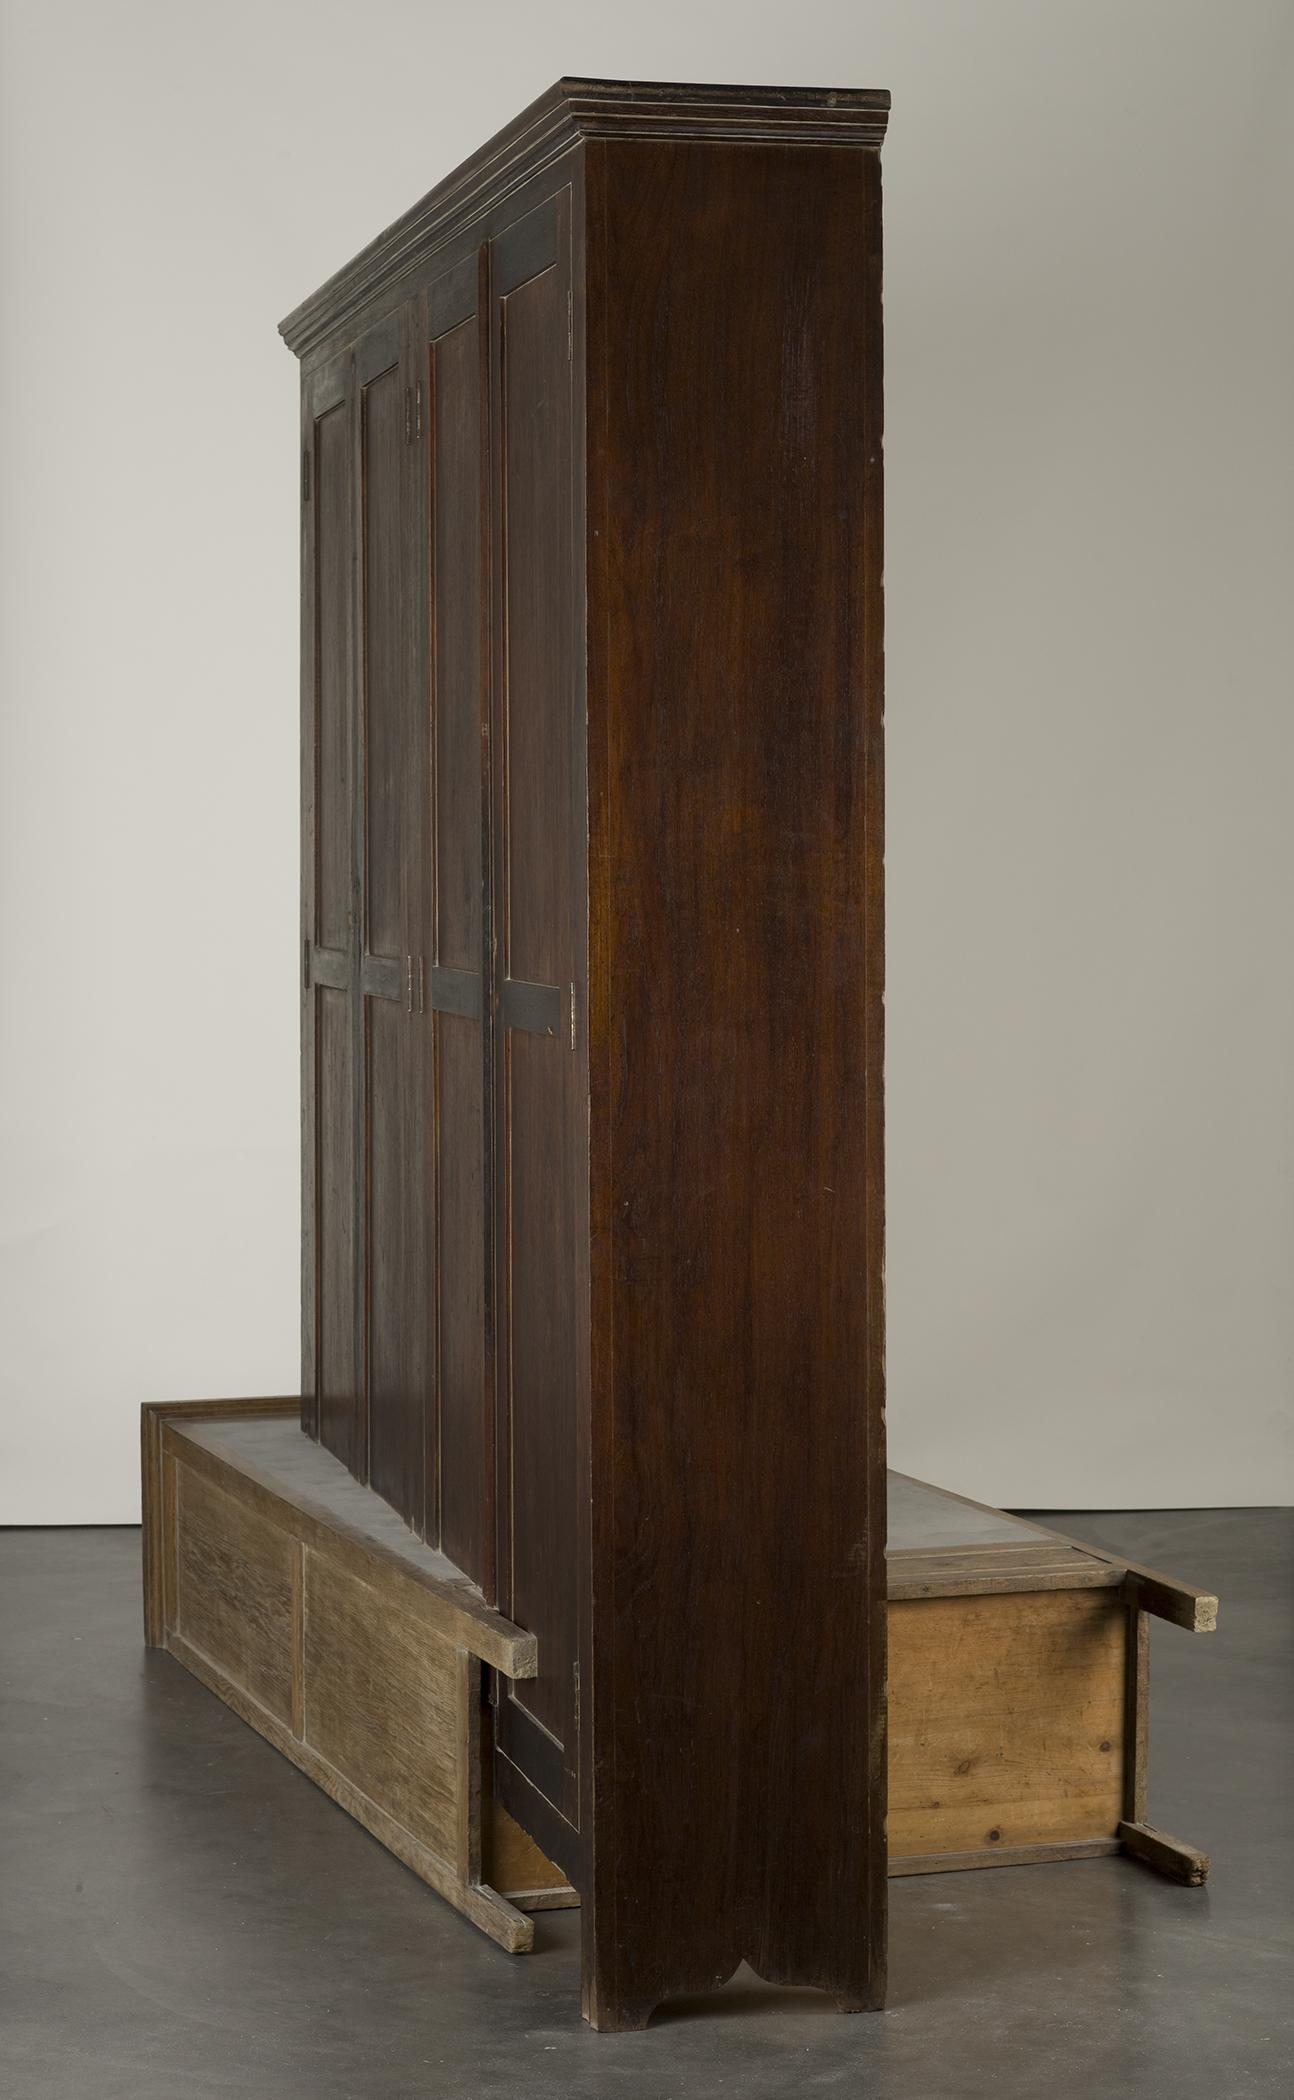 A vertical wooden cabinet precisely intersects a second wooden cabinet laying on the floor.